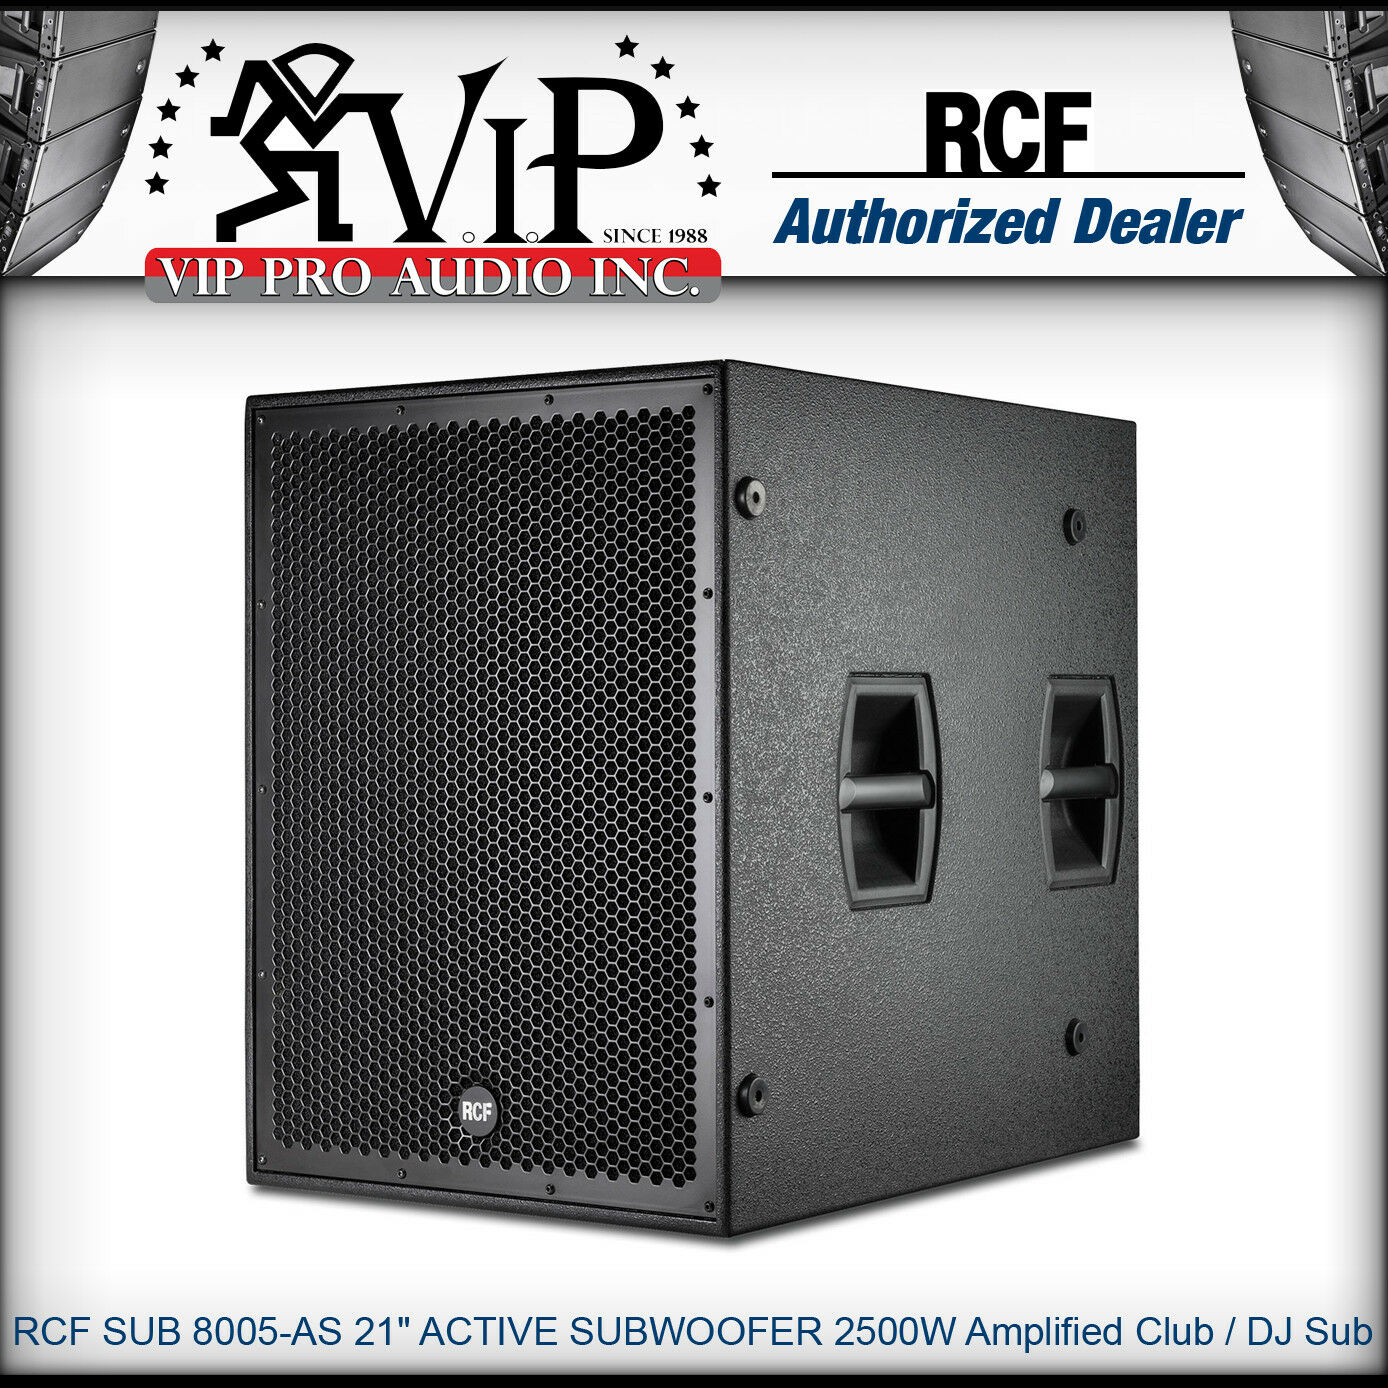 Details about RCF SUB 8005-AS mint 21